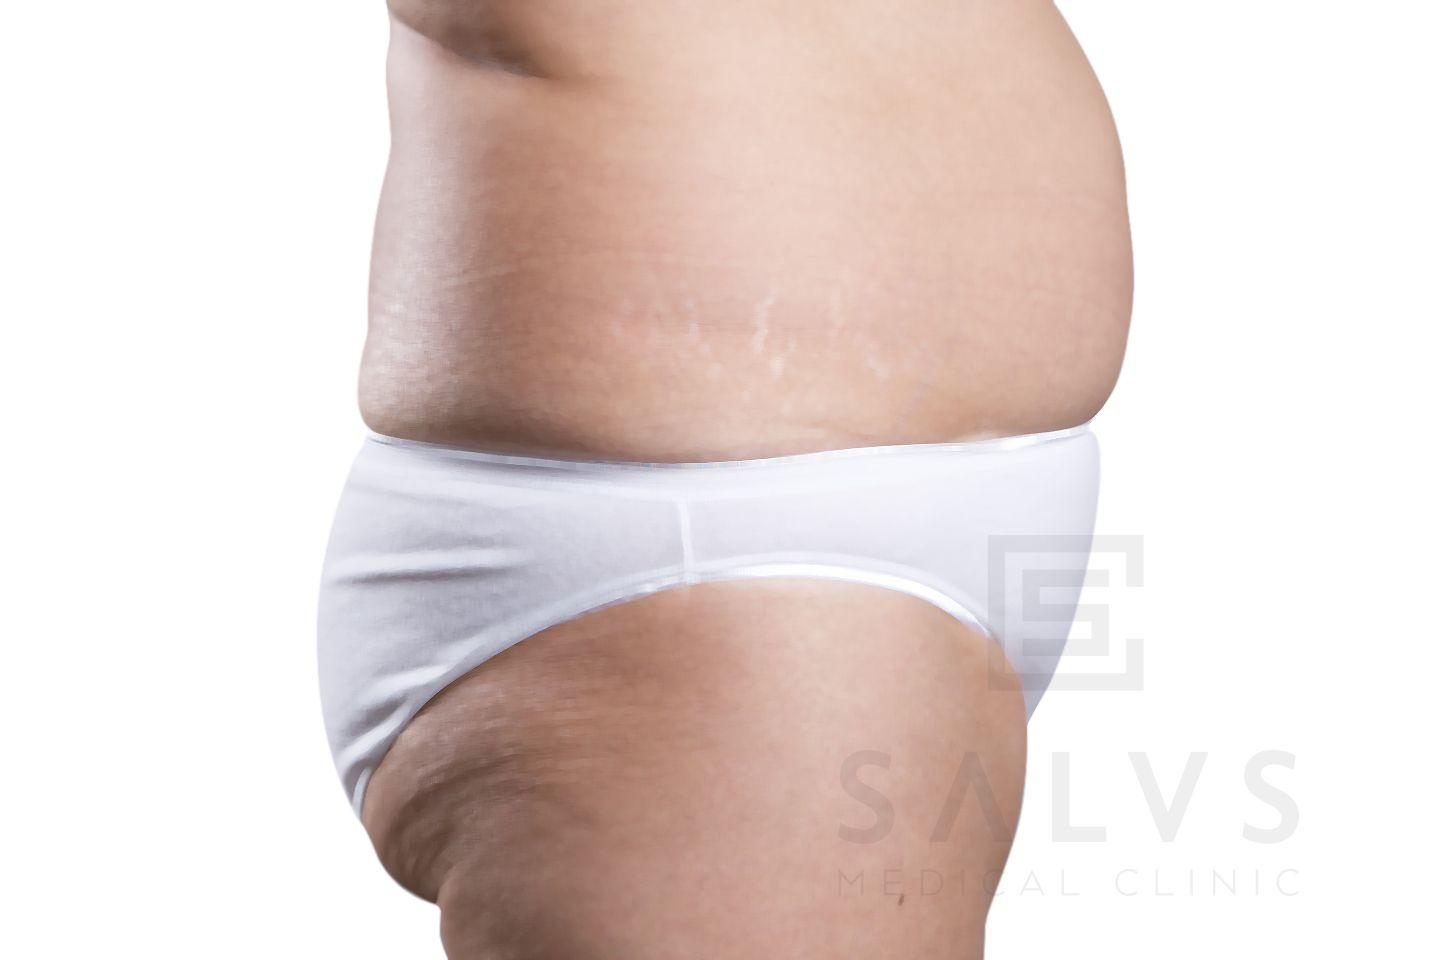 Abdominoplastia en Granada | Clínica Salus Medical Clinic